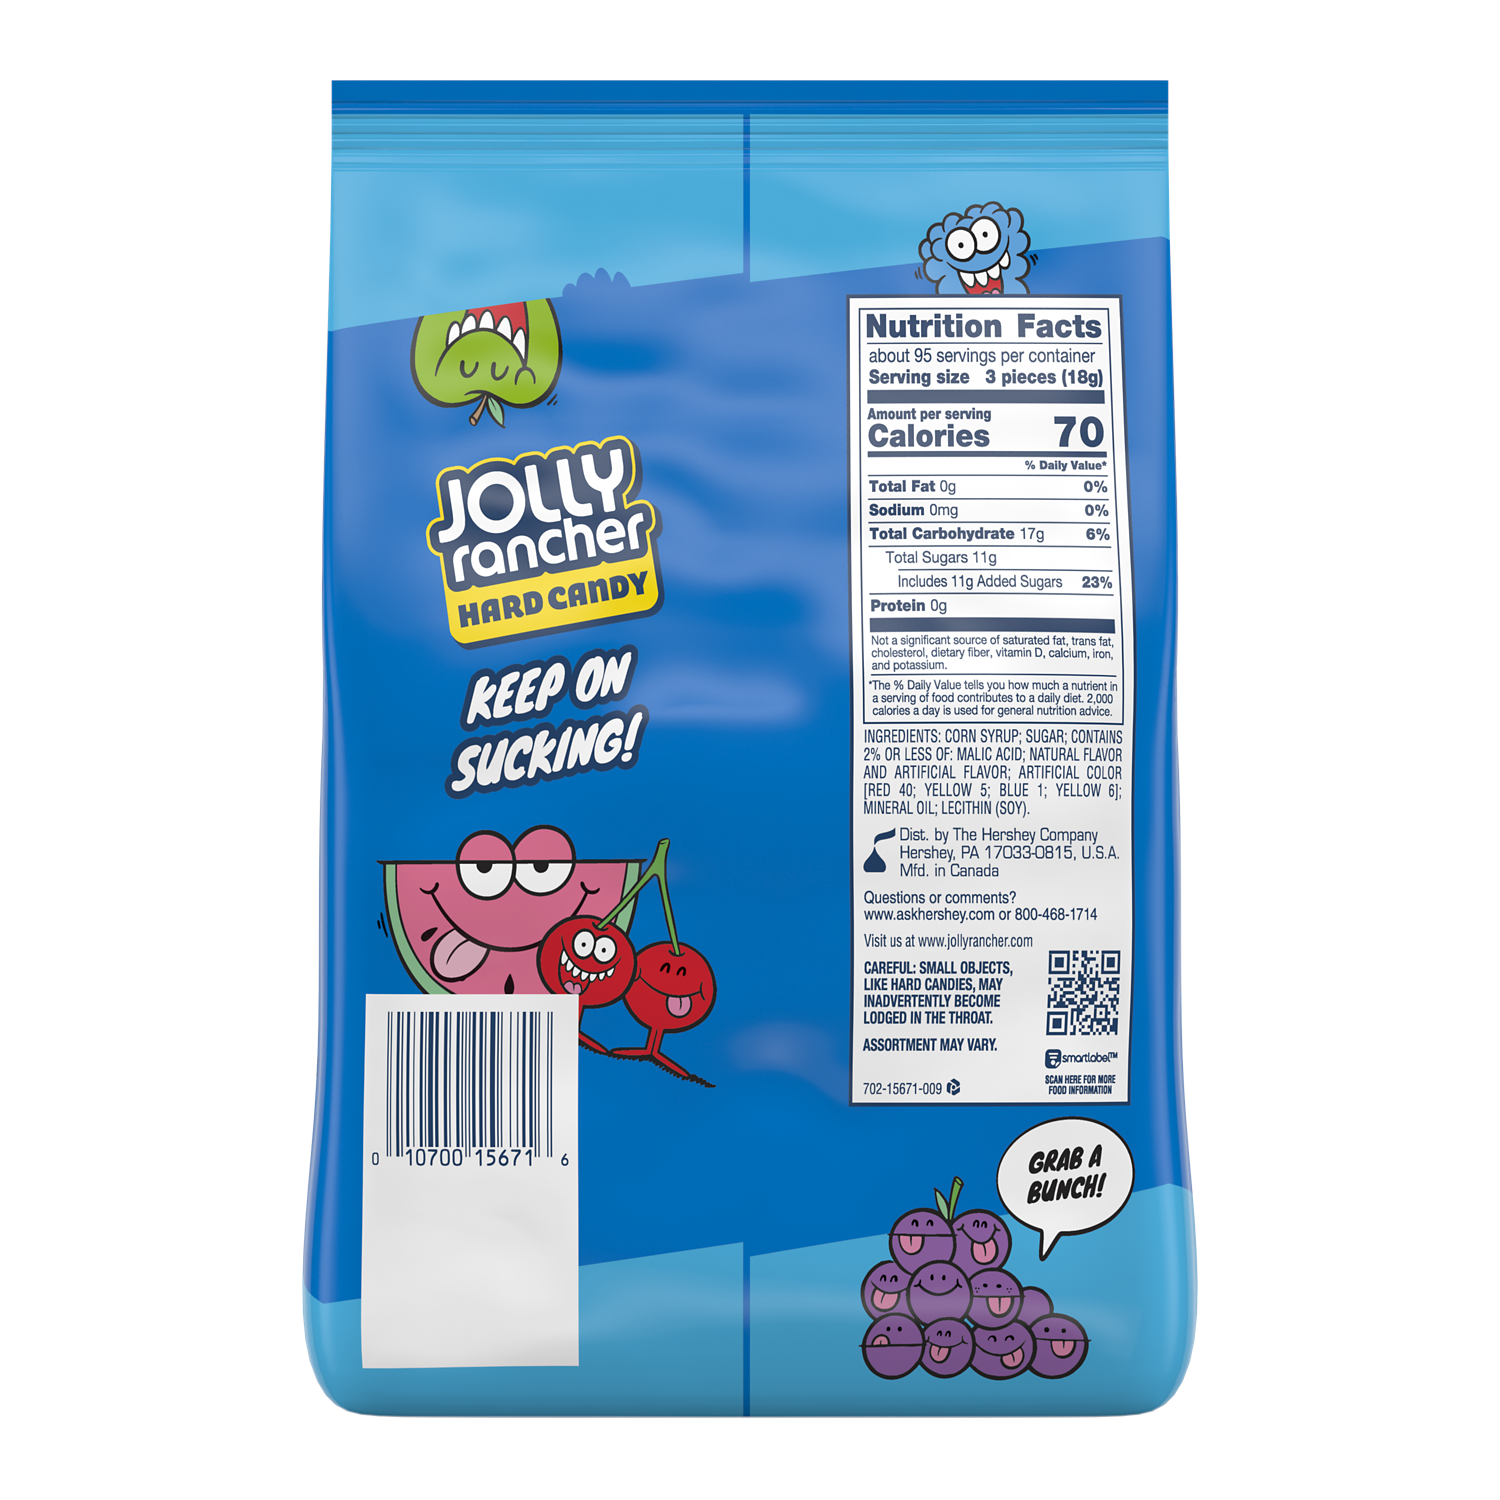 JOLLY RANCHER Original Flavors Hard Candy, 60 oz bag - Back of Package